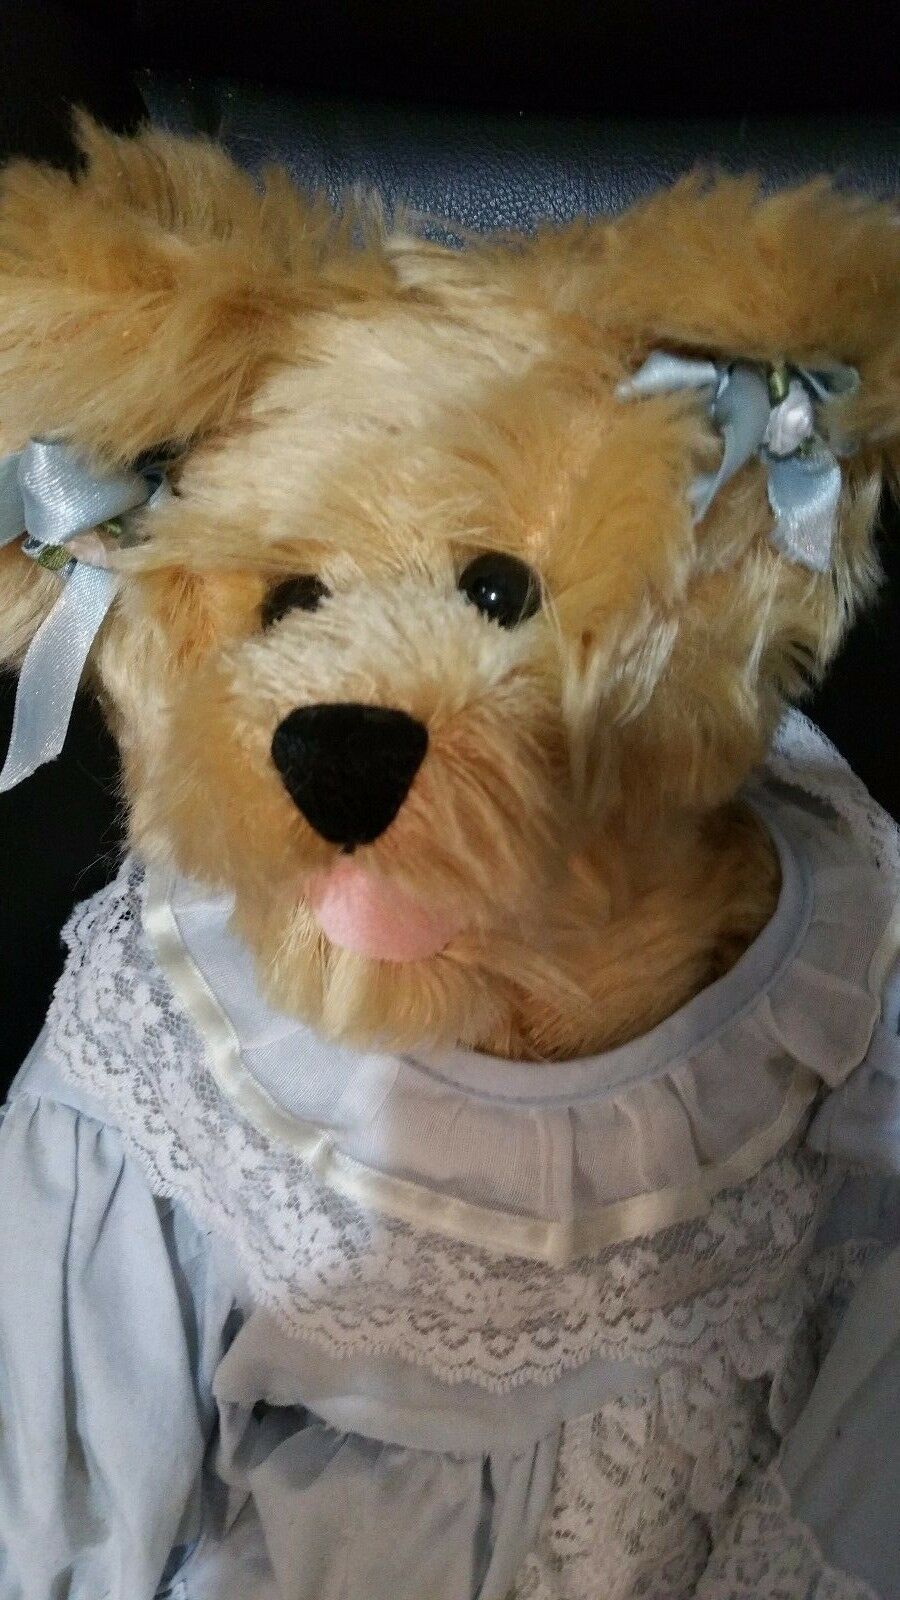 GigglesBear with Beautiful dress and Diaper from Forever Friends by Lori Nerdahl